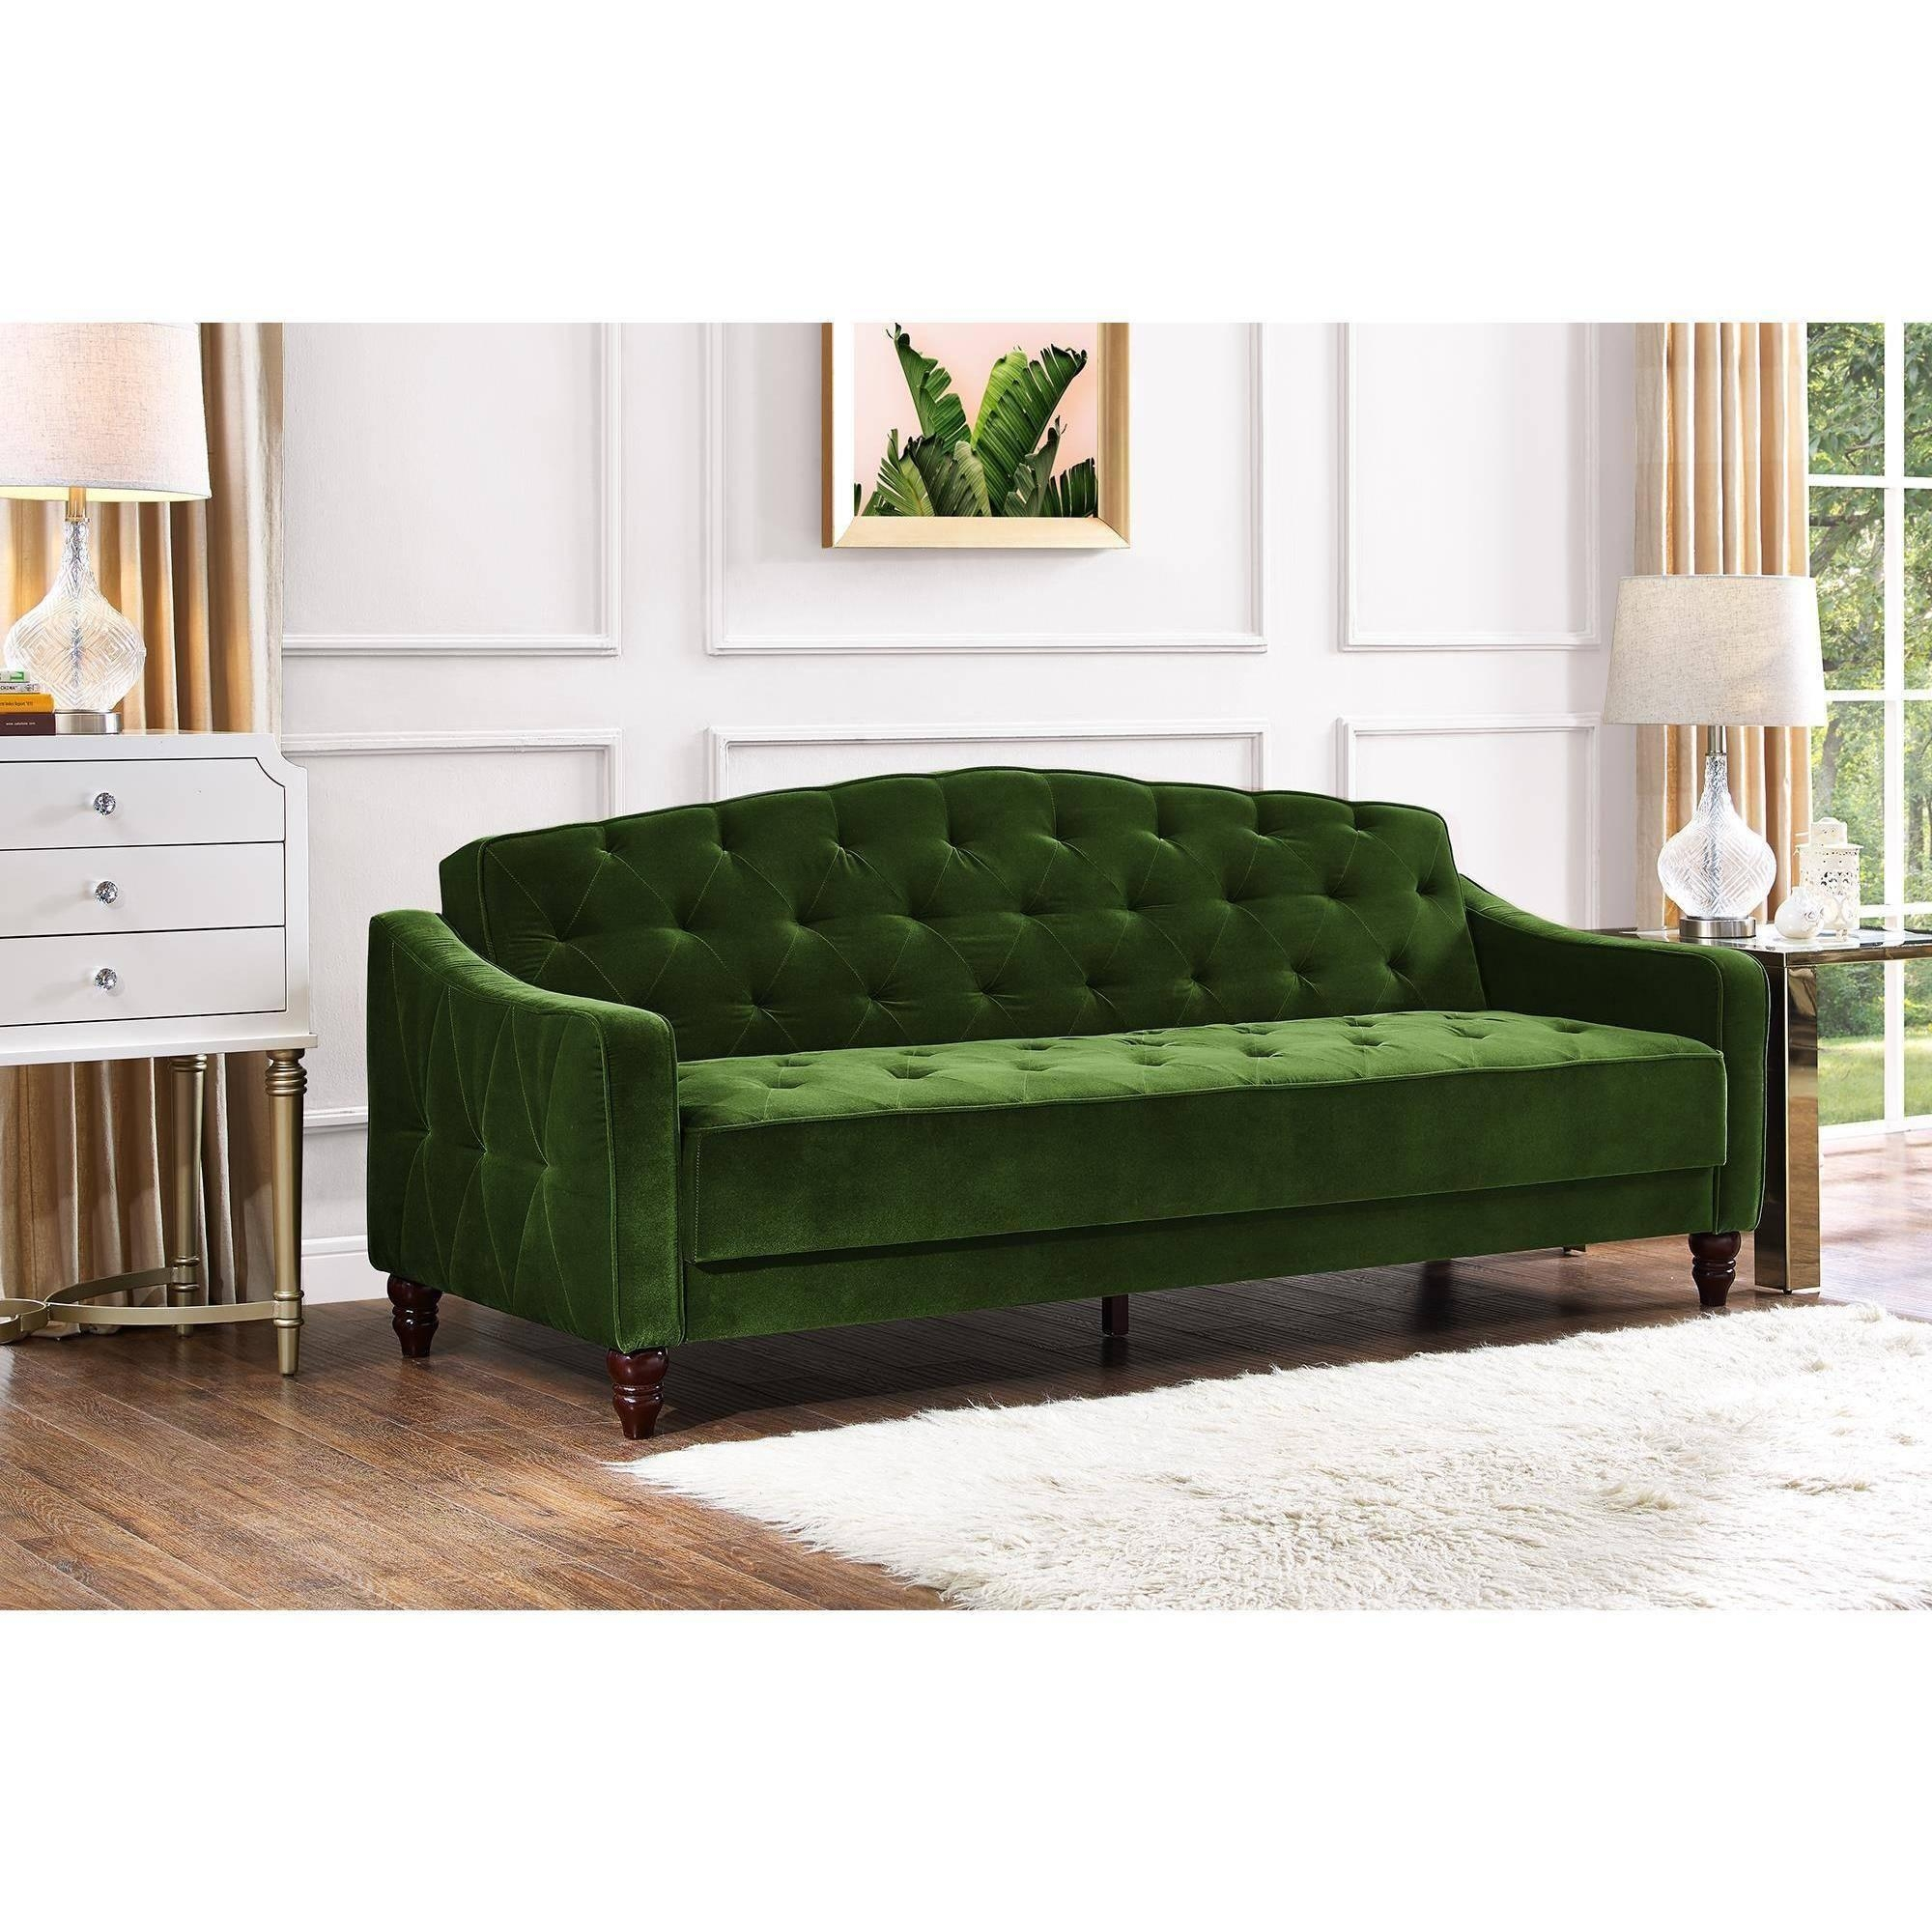 Novogratz Vintage Tufted Sofa Sleeper Ii, Multiple Colors Intended For Tufted Sleeper Sofas (View 15 of 20)